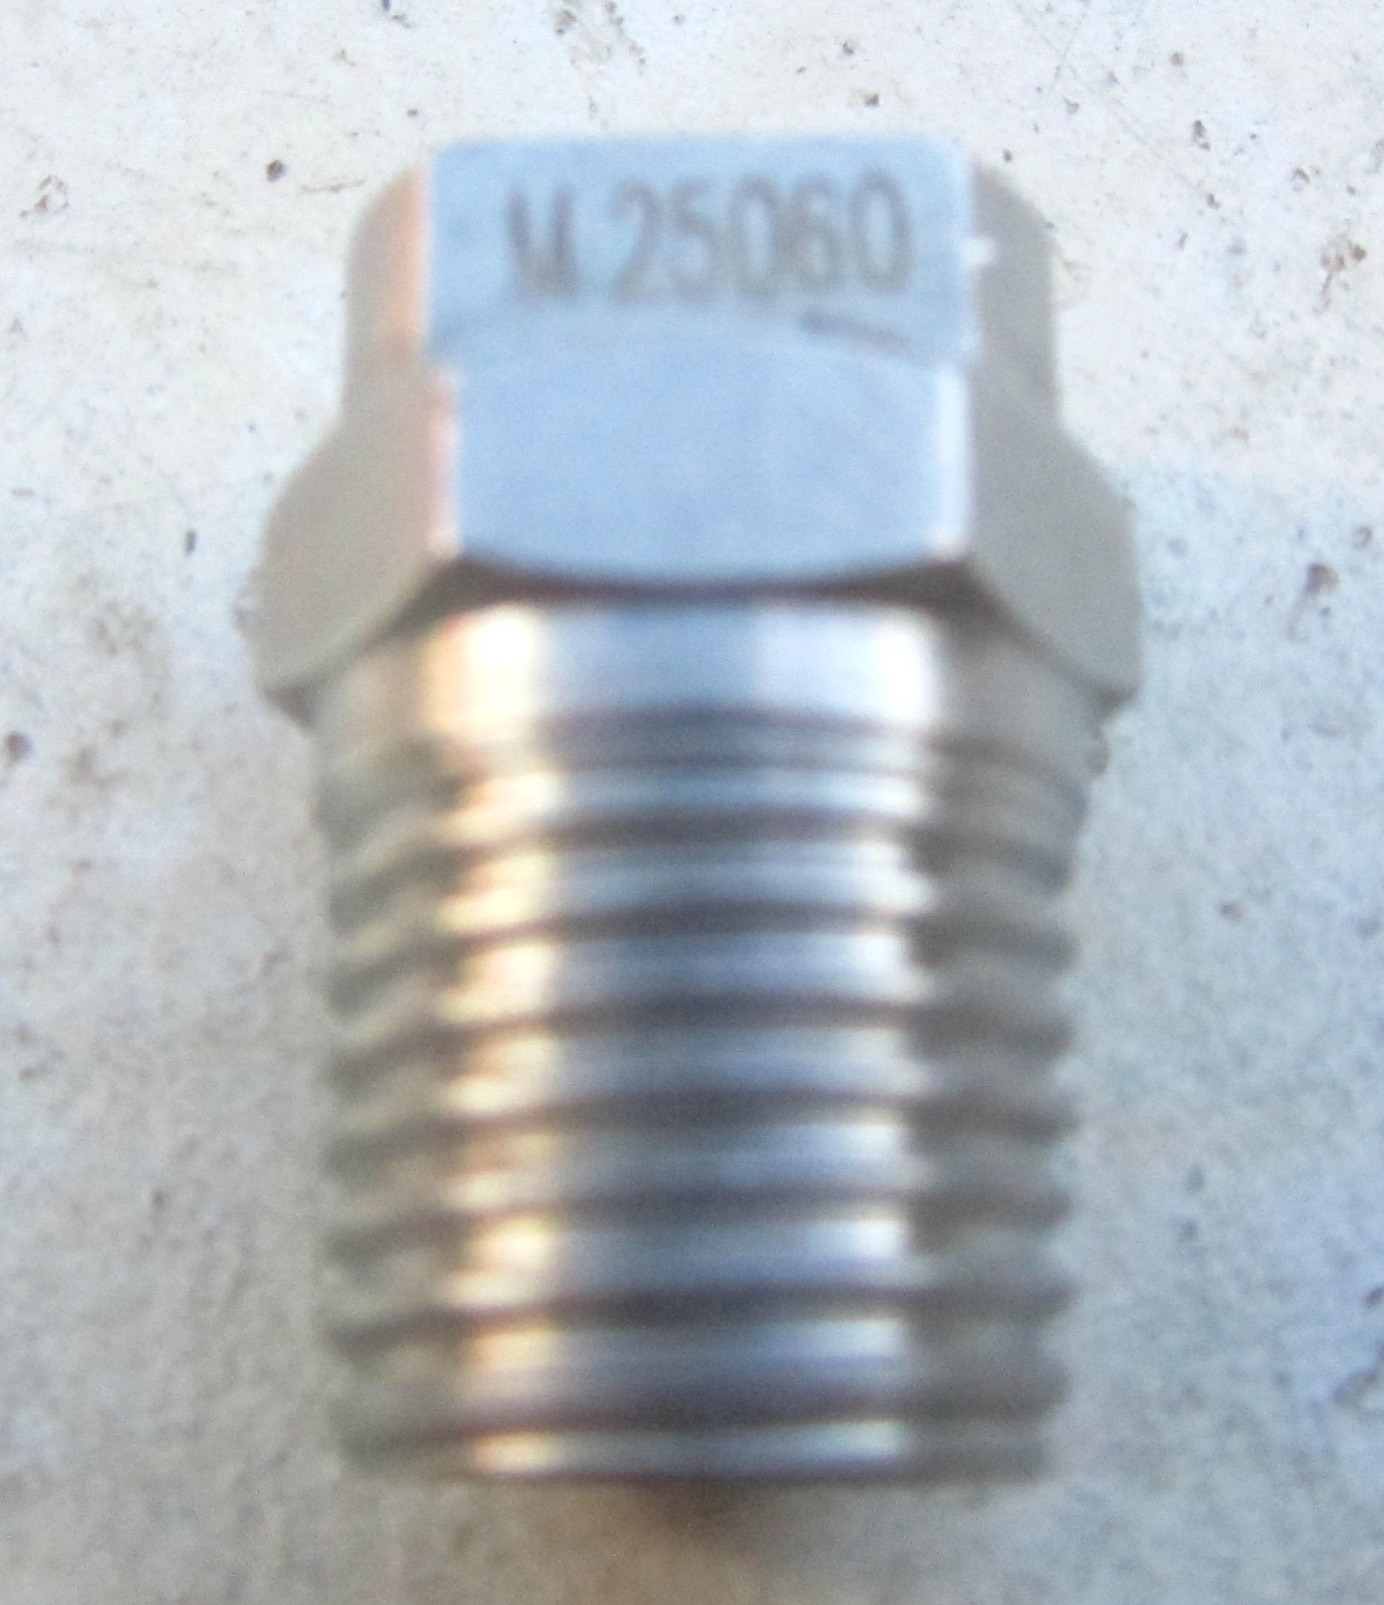 Stainless Steel 060 Meg Nozzle 25 Degrees